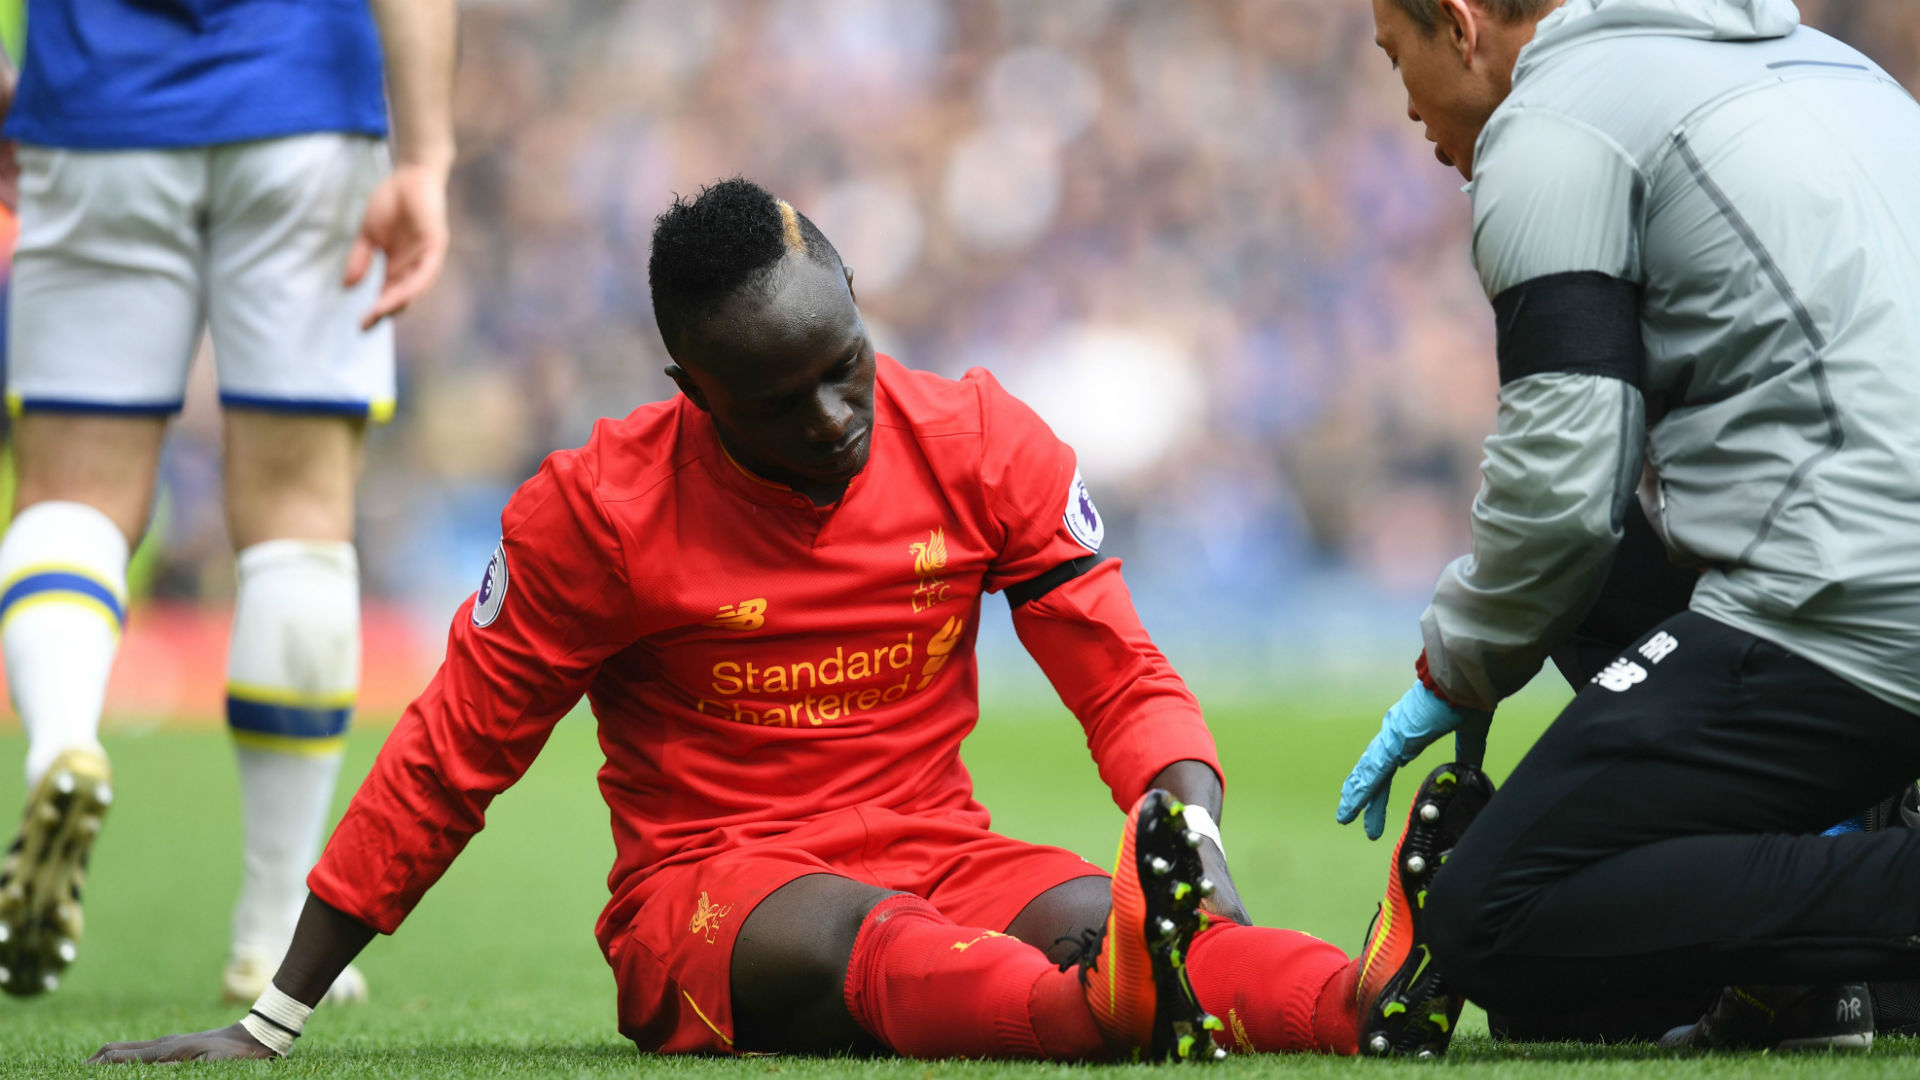 Liverpool's Klopp waits on Mane ahead of Brighton and Hove Albion clash